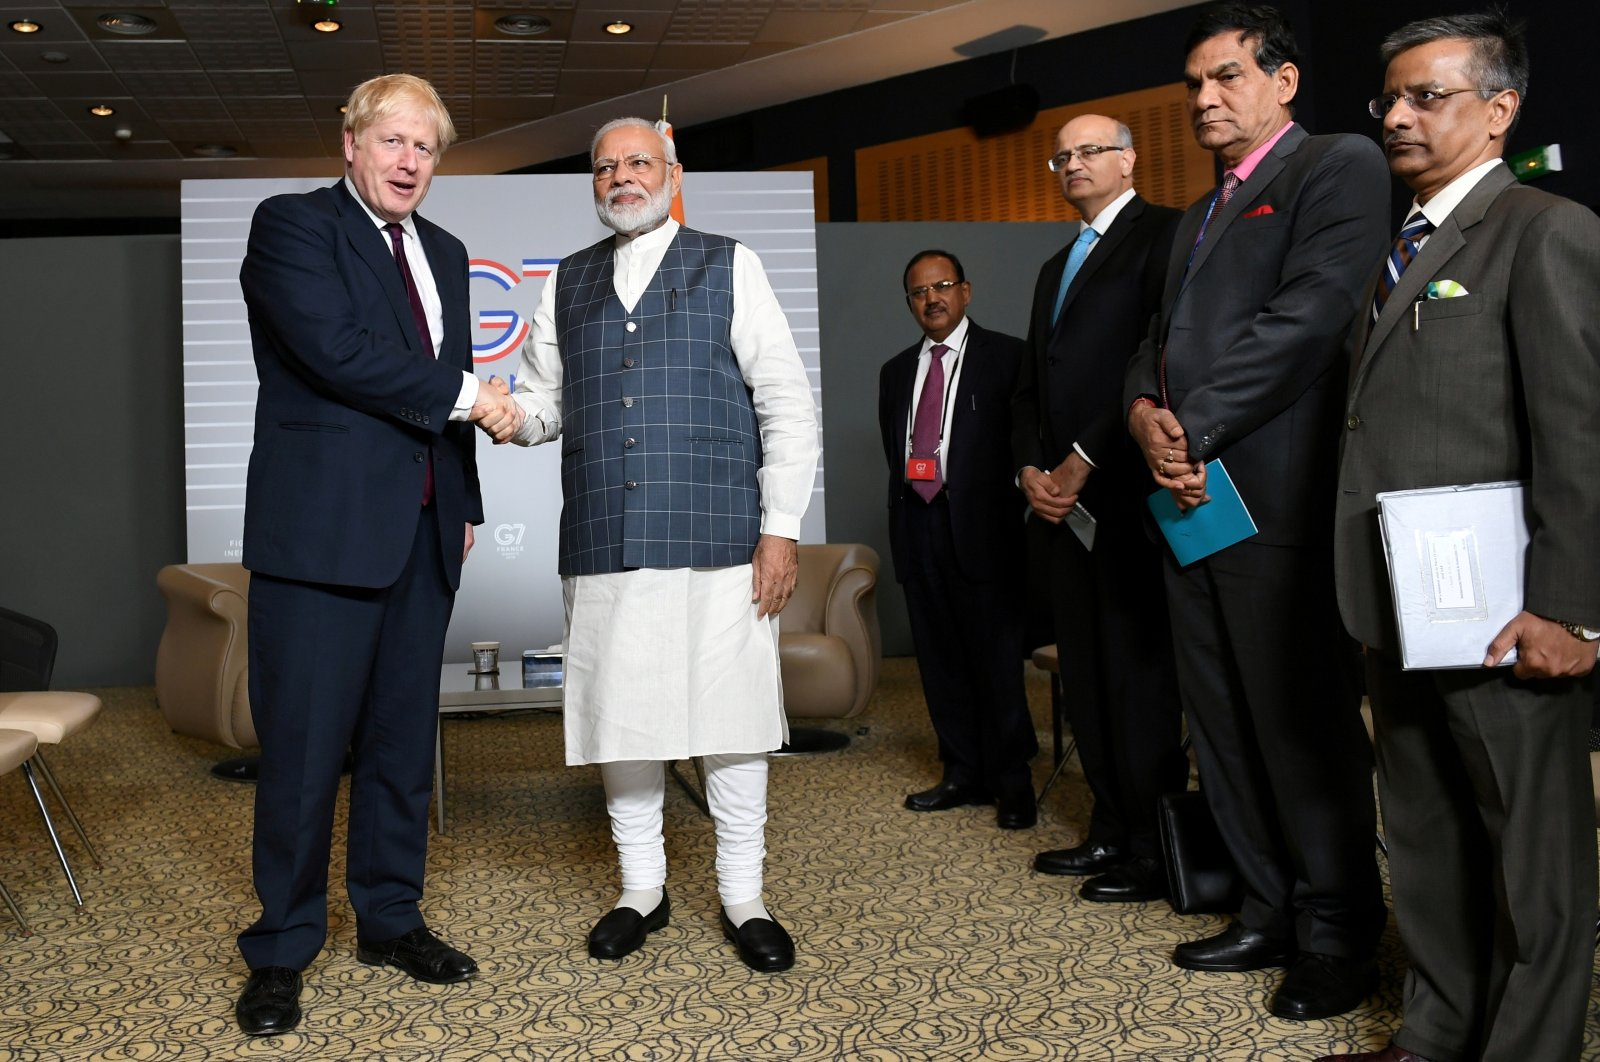 Britain's Prime Minister Boris Johnson meets Indian Prime Minister Narendra Modi at a bilateral meeting during the G-7 summit in Biarritz, France, Aug. 25, 2019. (Reuters Photo)